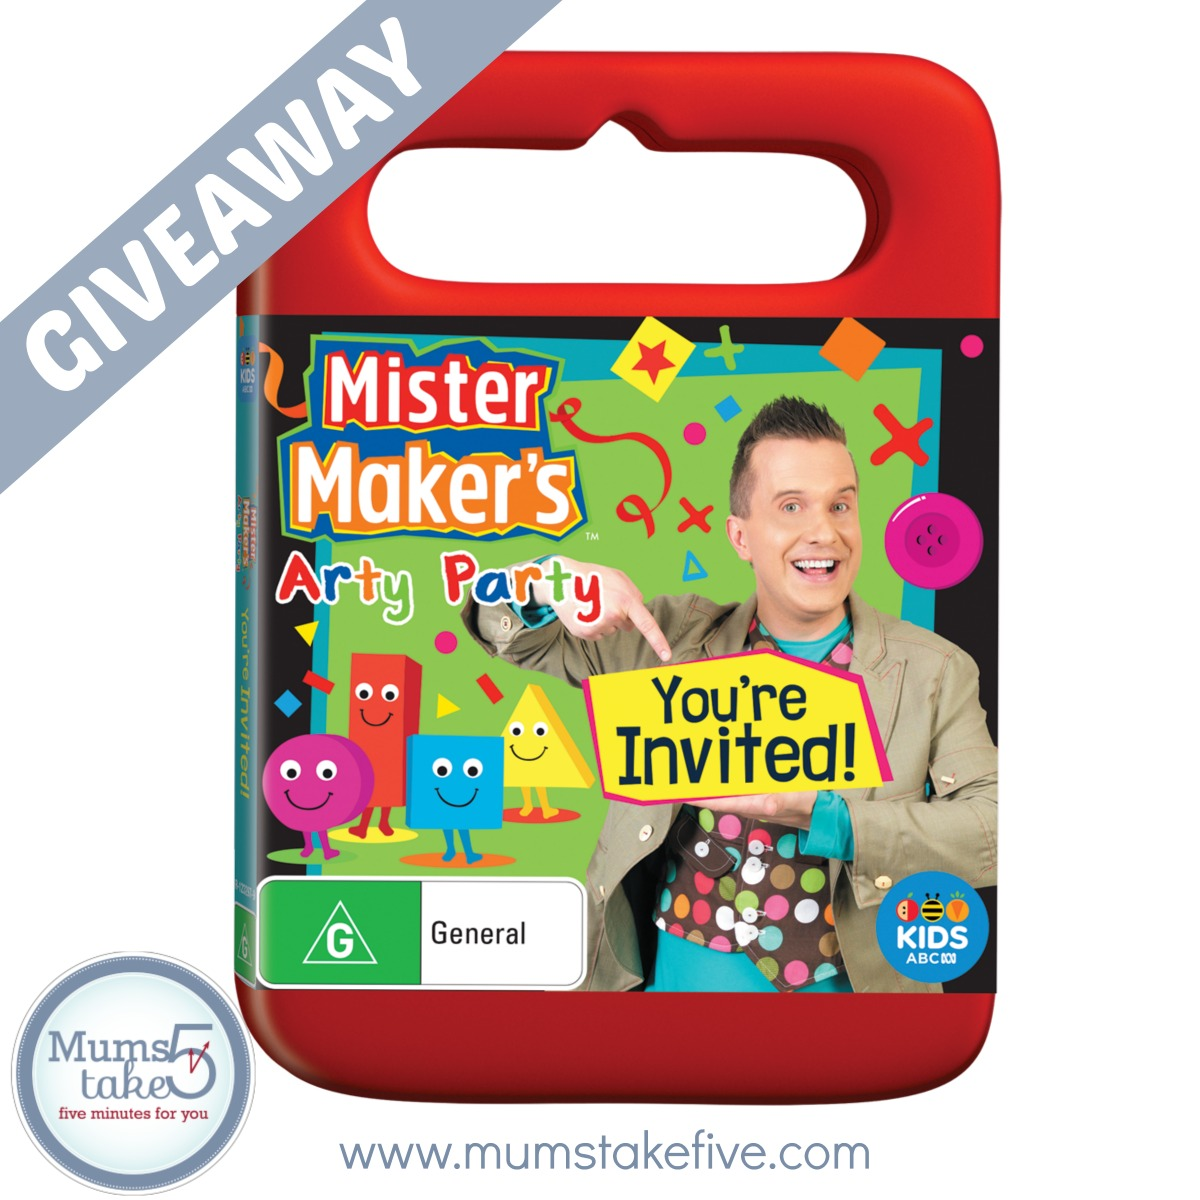 Mister Maker Arty Party  ABC Kids